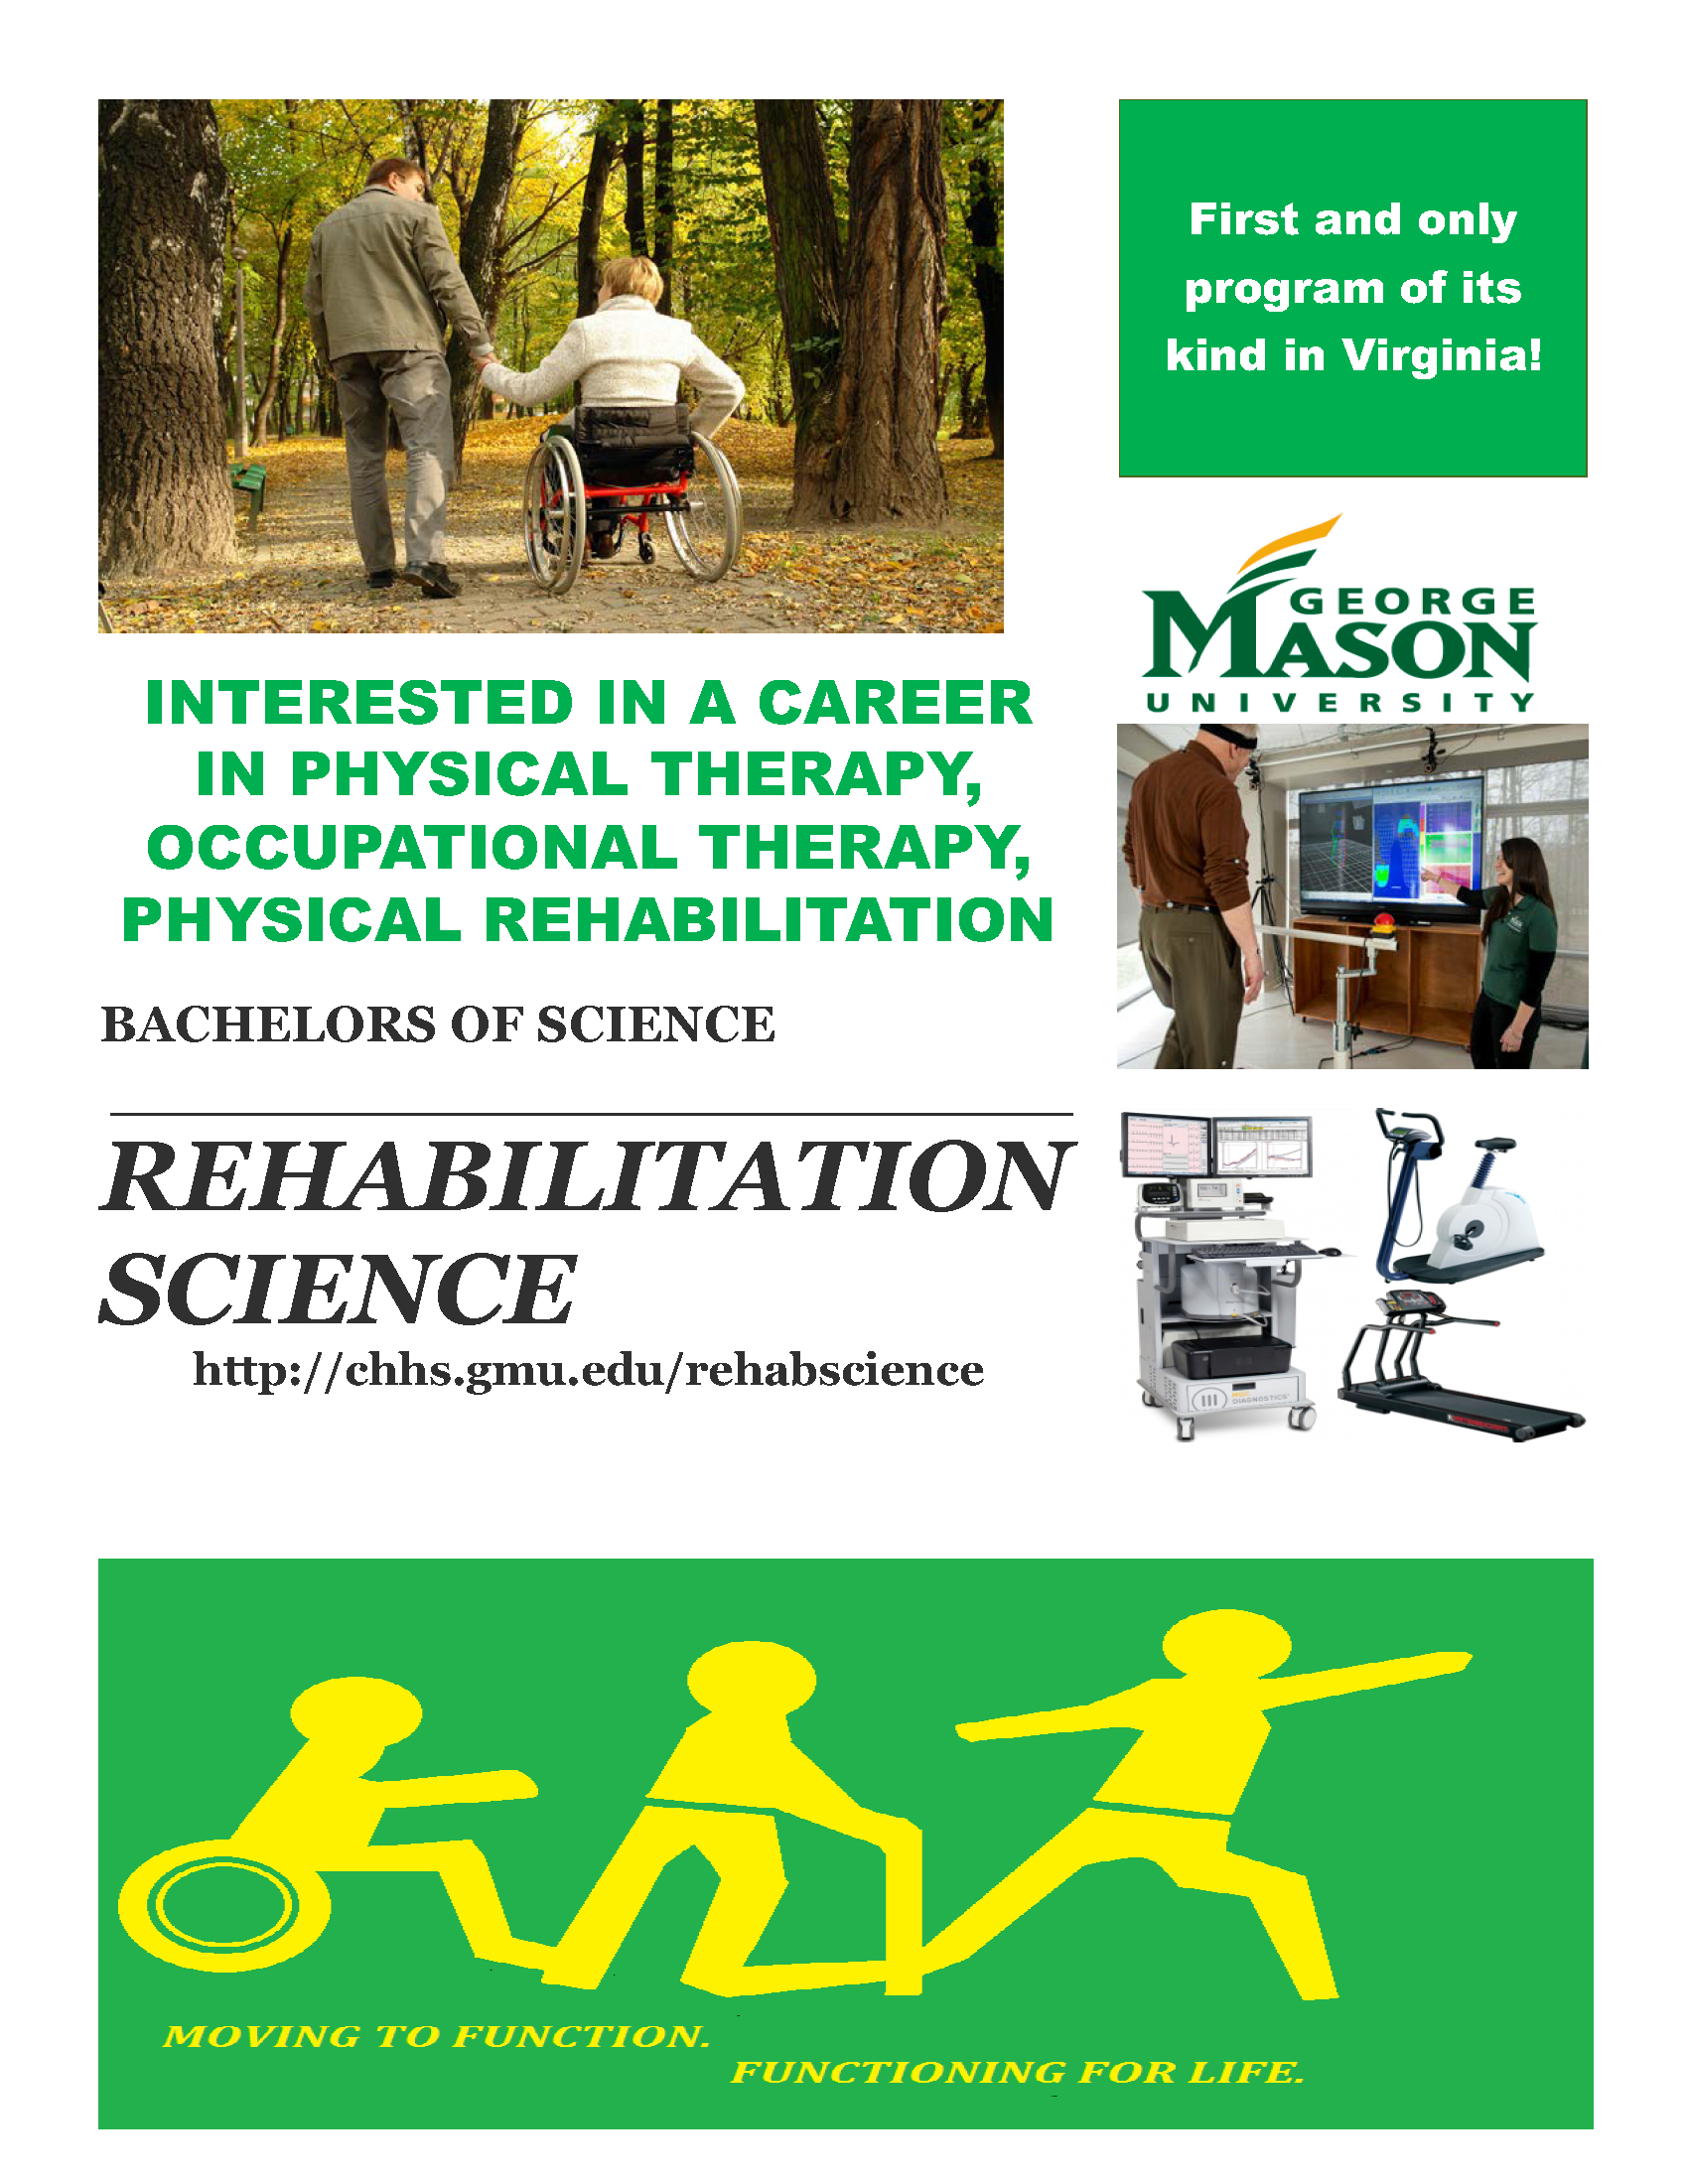 Information regarding BS in Rehabilitation Science ad is as follows Create Your Own Tags: is #RehabilitationScience #PTprepping and Start date (when you would like your content to be posted) is November 17 2017 and End Date  (when you would like your content to be removed from the screens) is December 17 2017 and File is Browse and Name of Ad/Event is BS in Rehabilitation Science ad and File Name is Ad2_comp.jpg and Email is jbowen6@gmu.edu and Name is Josh Bowen and Affiliation is Mason Department and Panel for your ad to be displayed is Side and